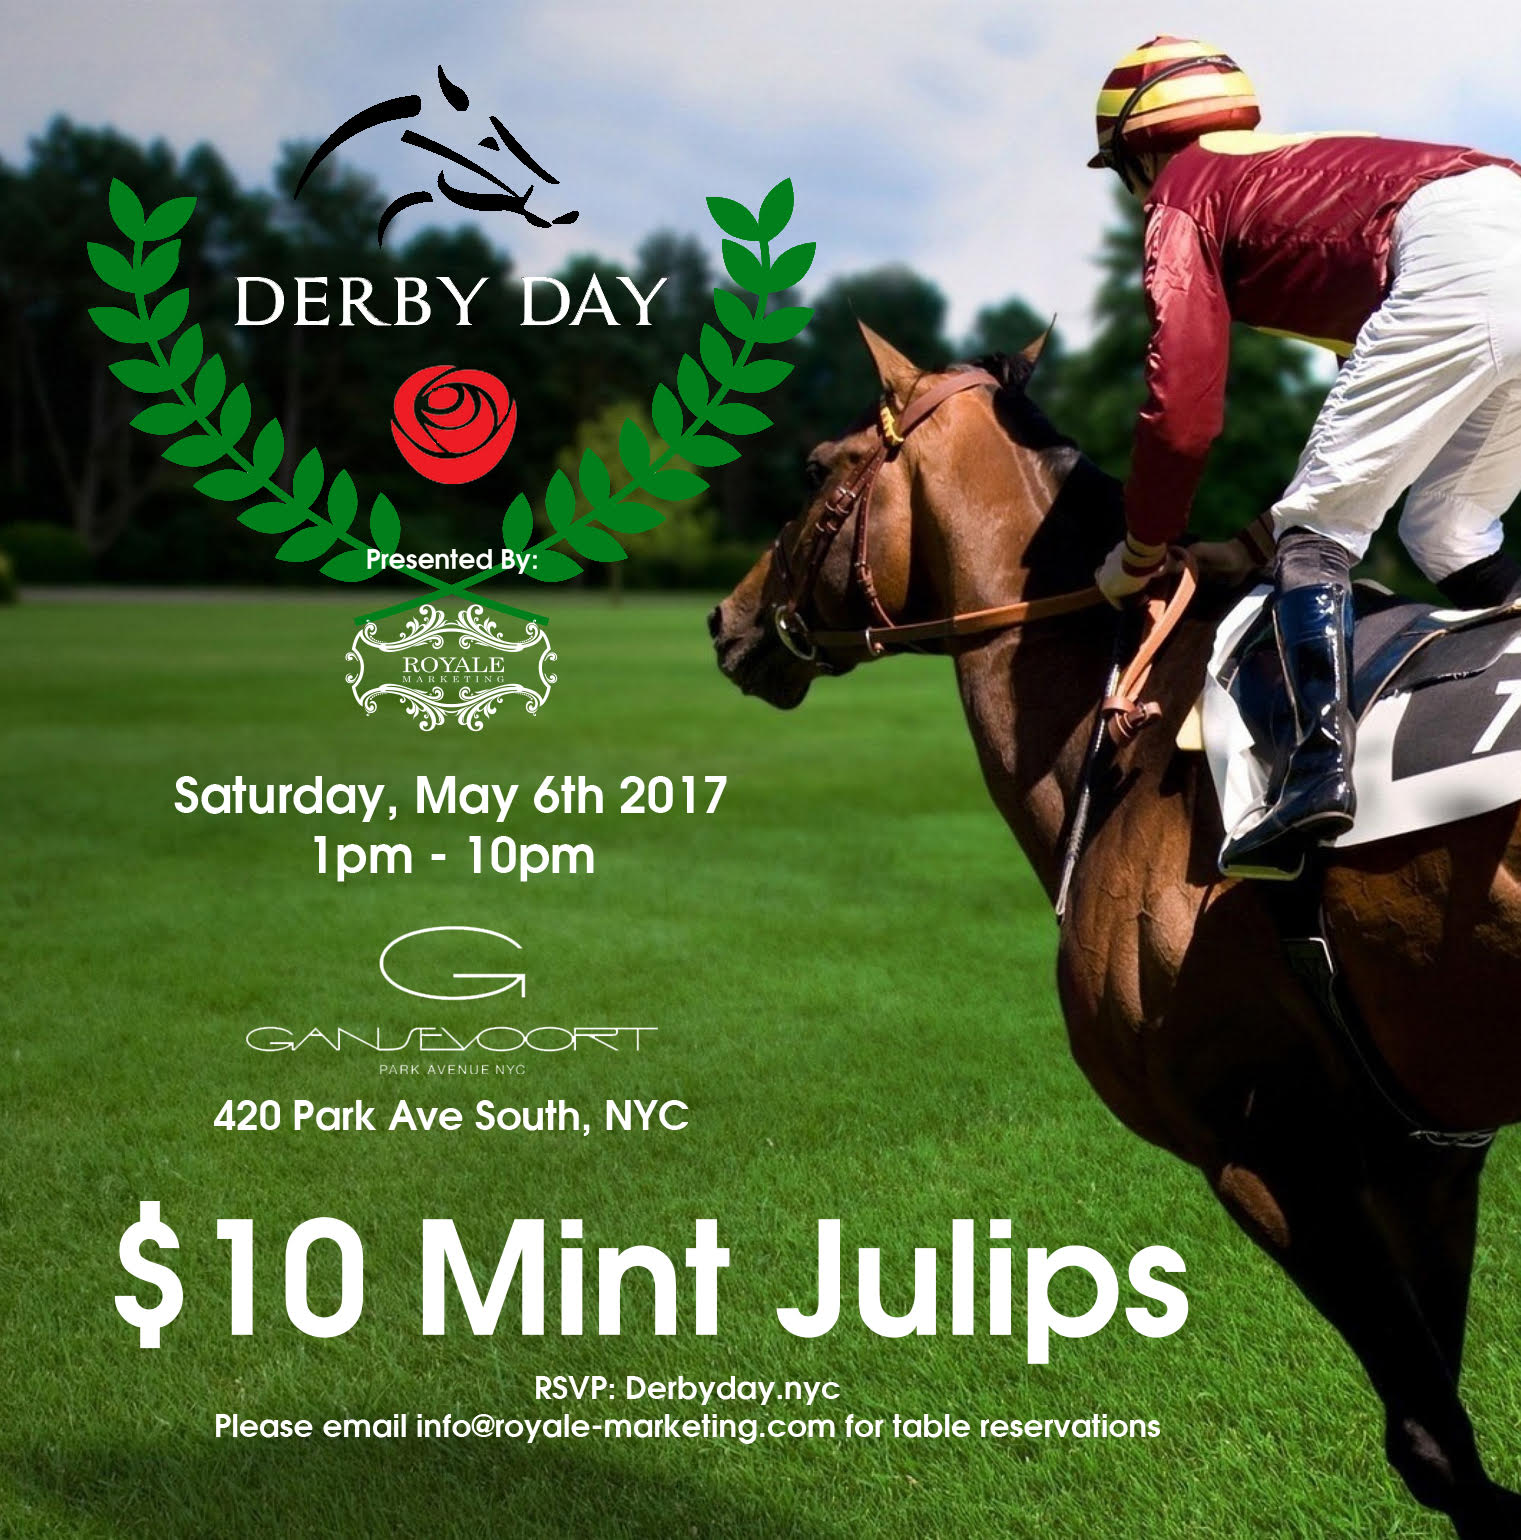 Its Derby Day at The Gansevoort Hotel